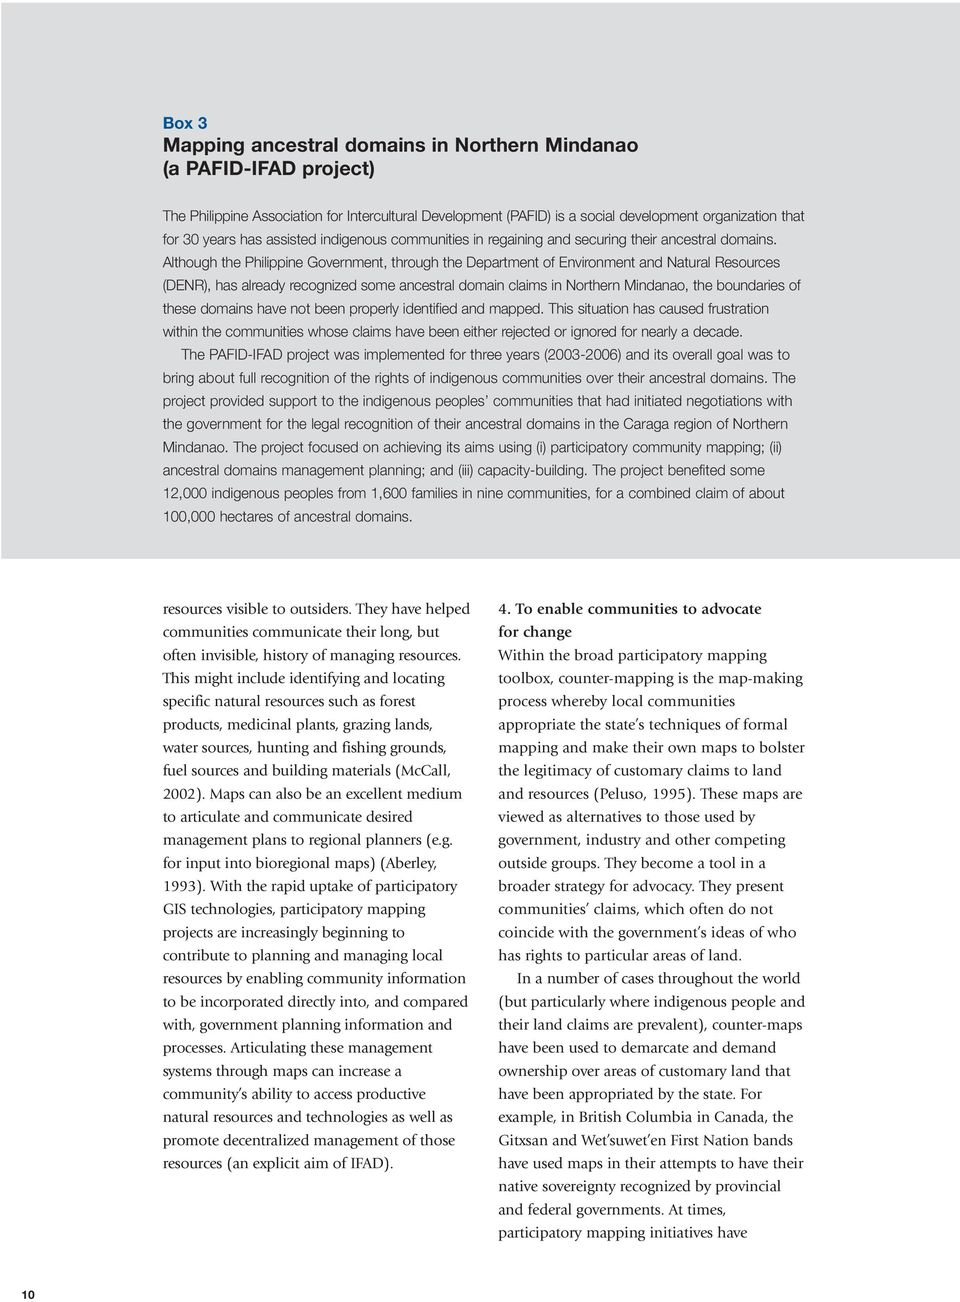 Although the Philippine Government, through the Department of Environment and Natural Resources (DENR), has already recognized some ancestral domain claims in Northern Mindanao, the boundaries of